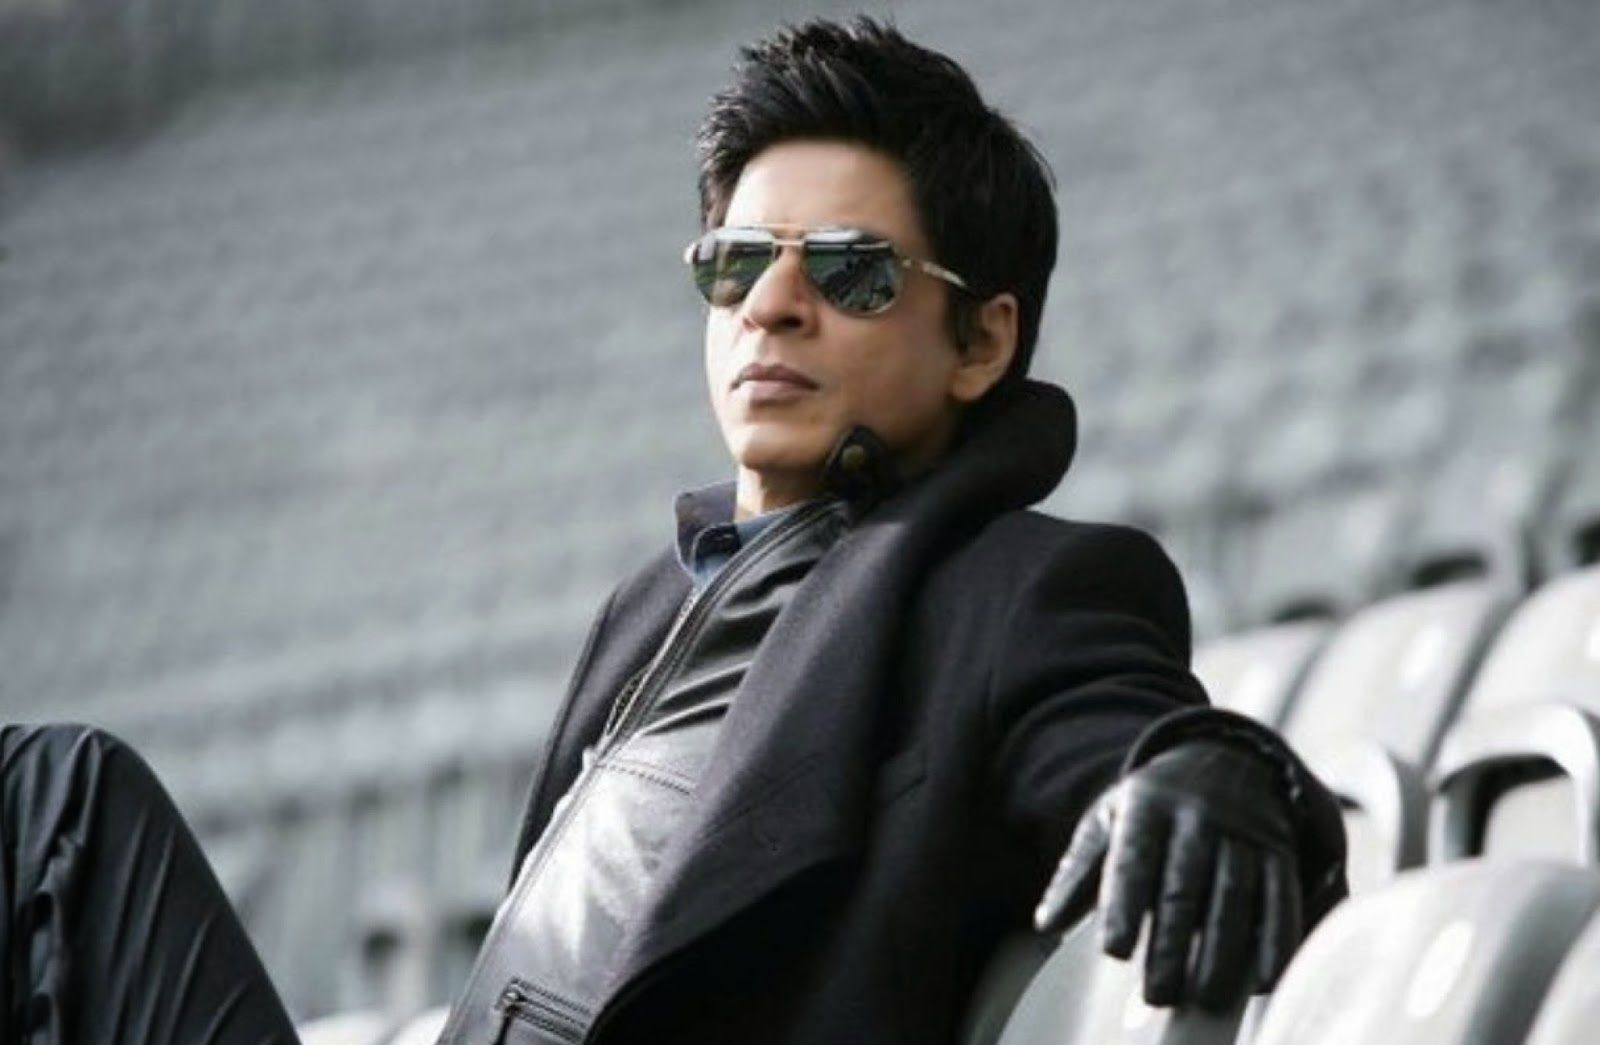 shahrukh khan latest hd wallpapers images download | the men i love